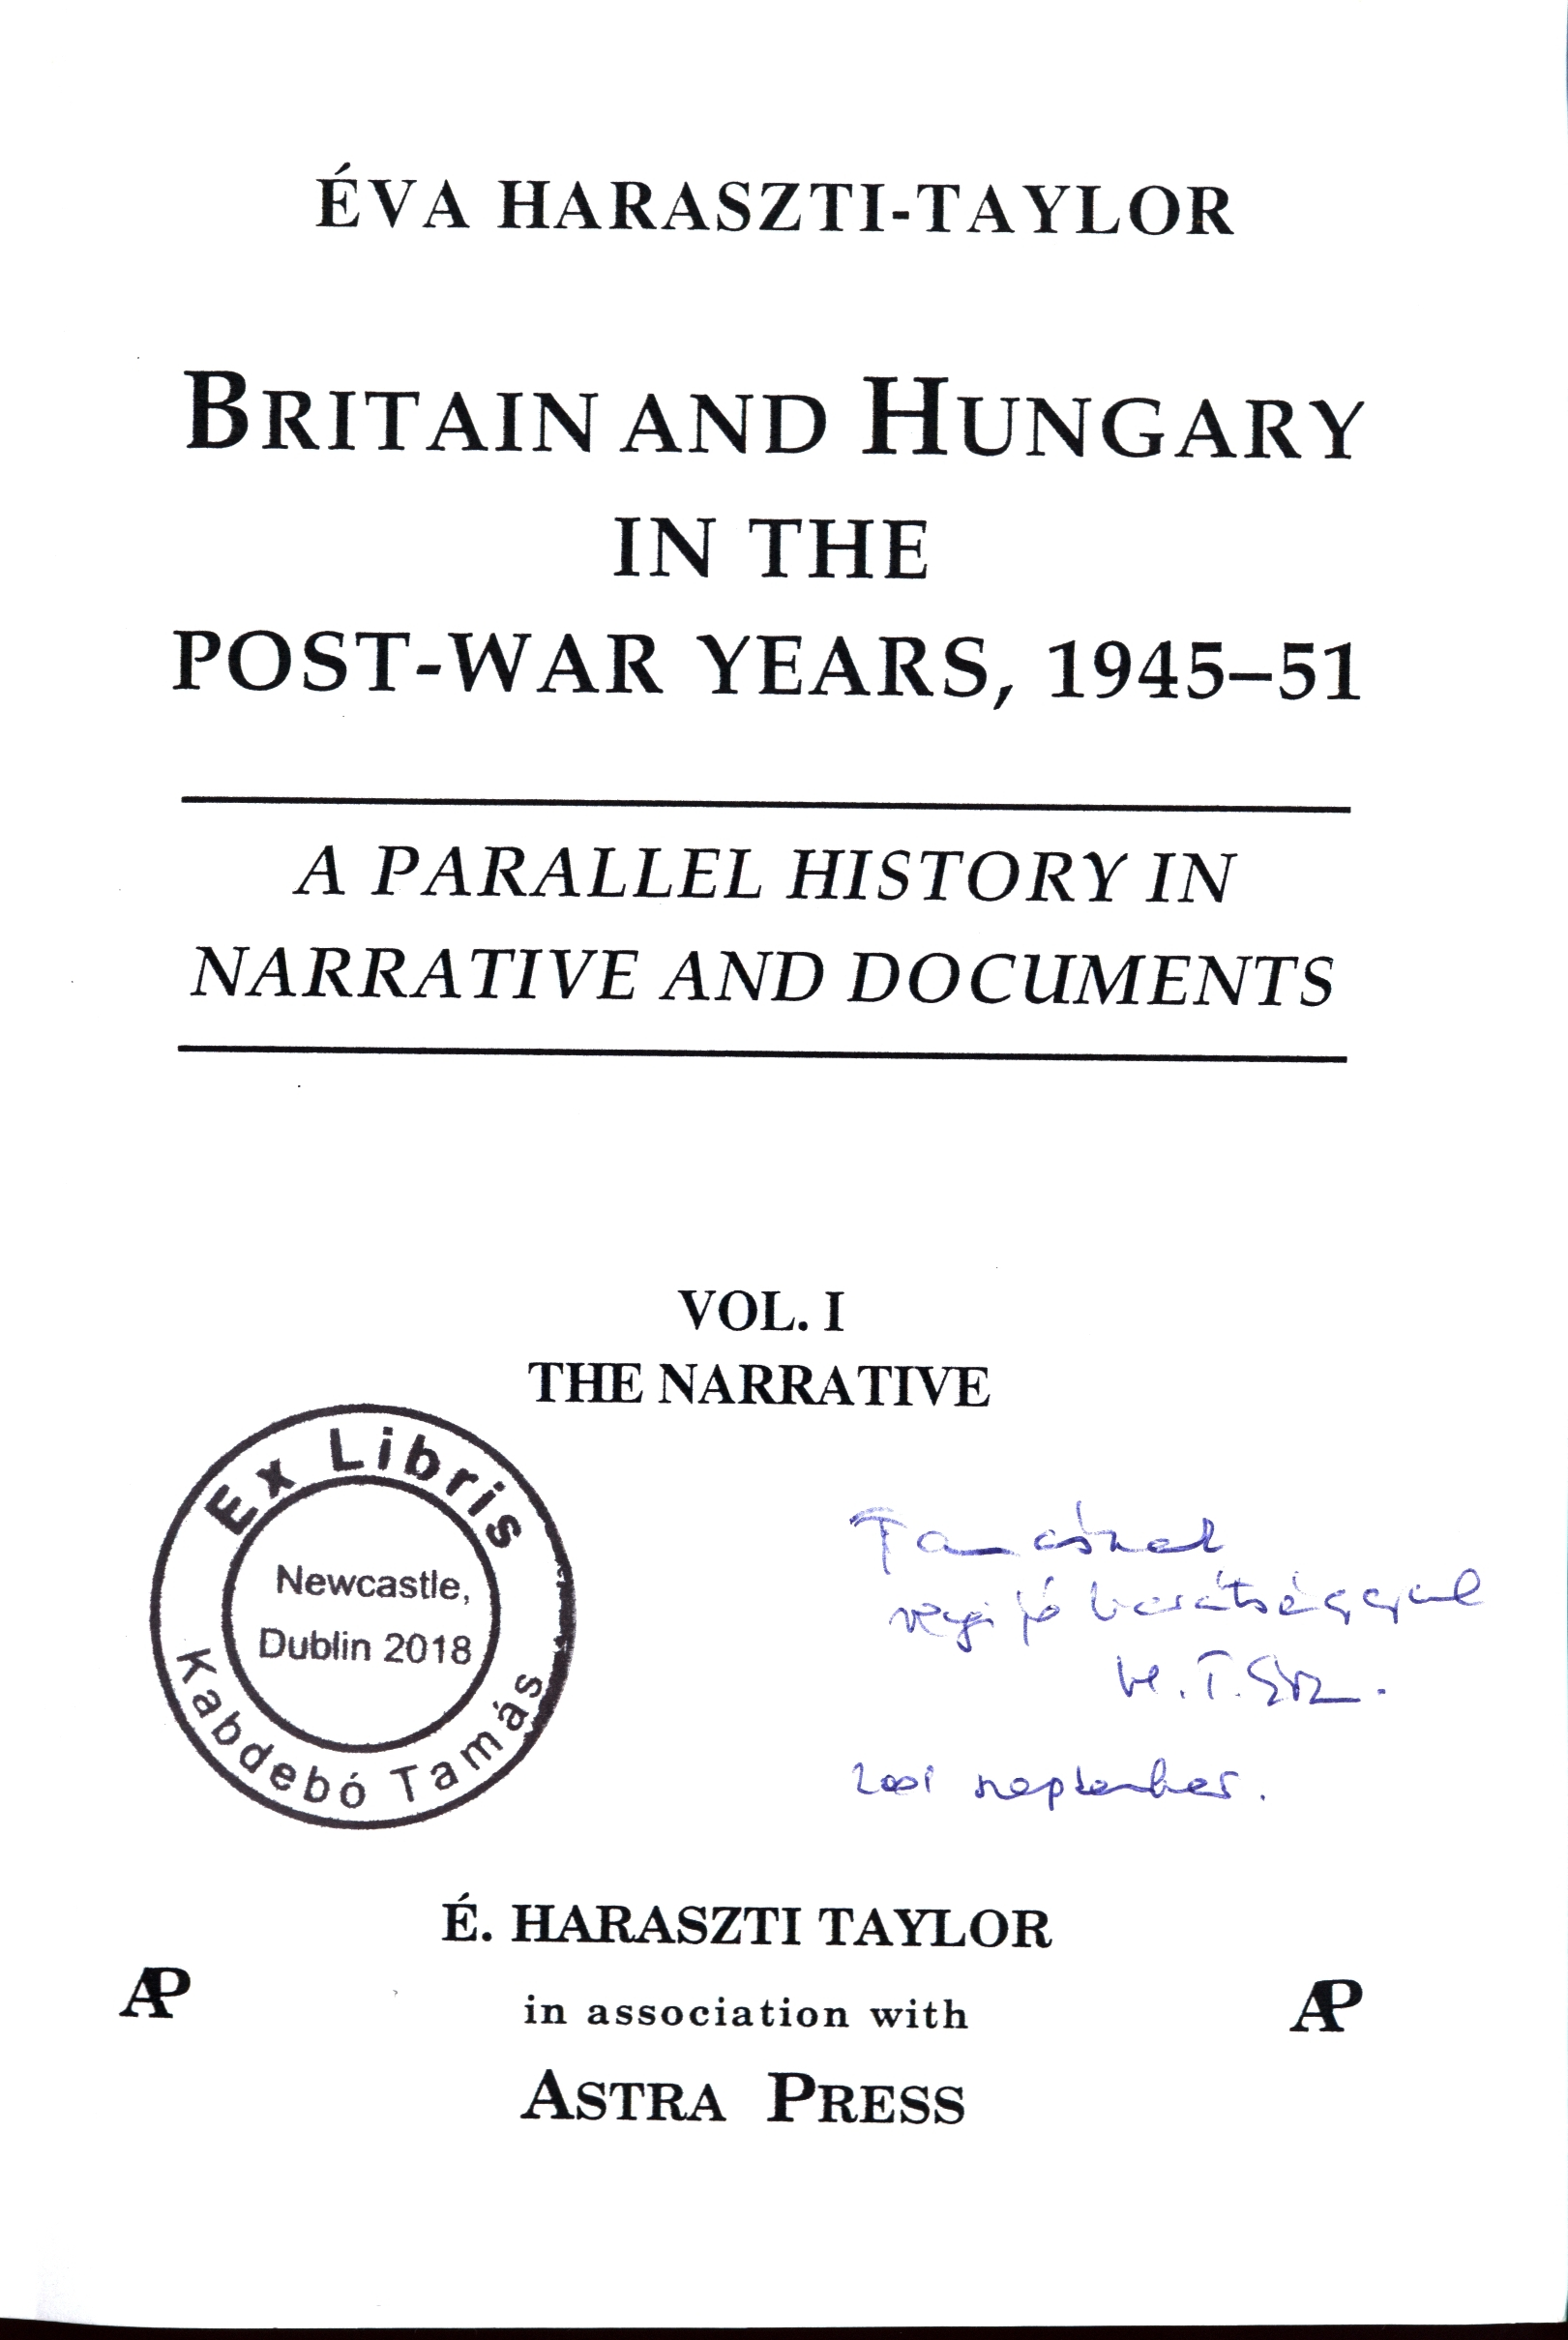 Britain and Hungary in the post-war years, 1945-51 a parallel history in narrative and documents. 1. vol., The narrative